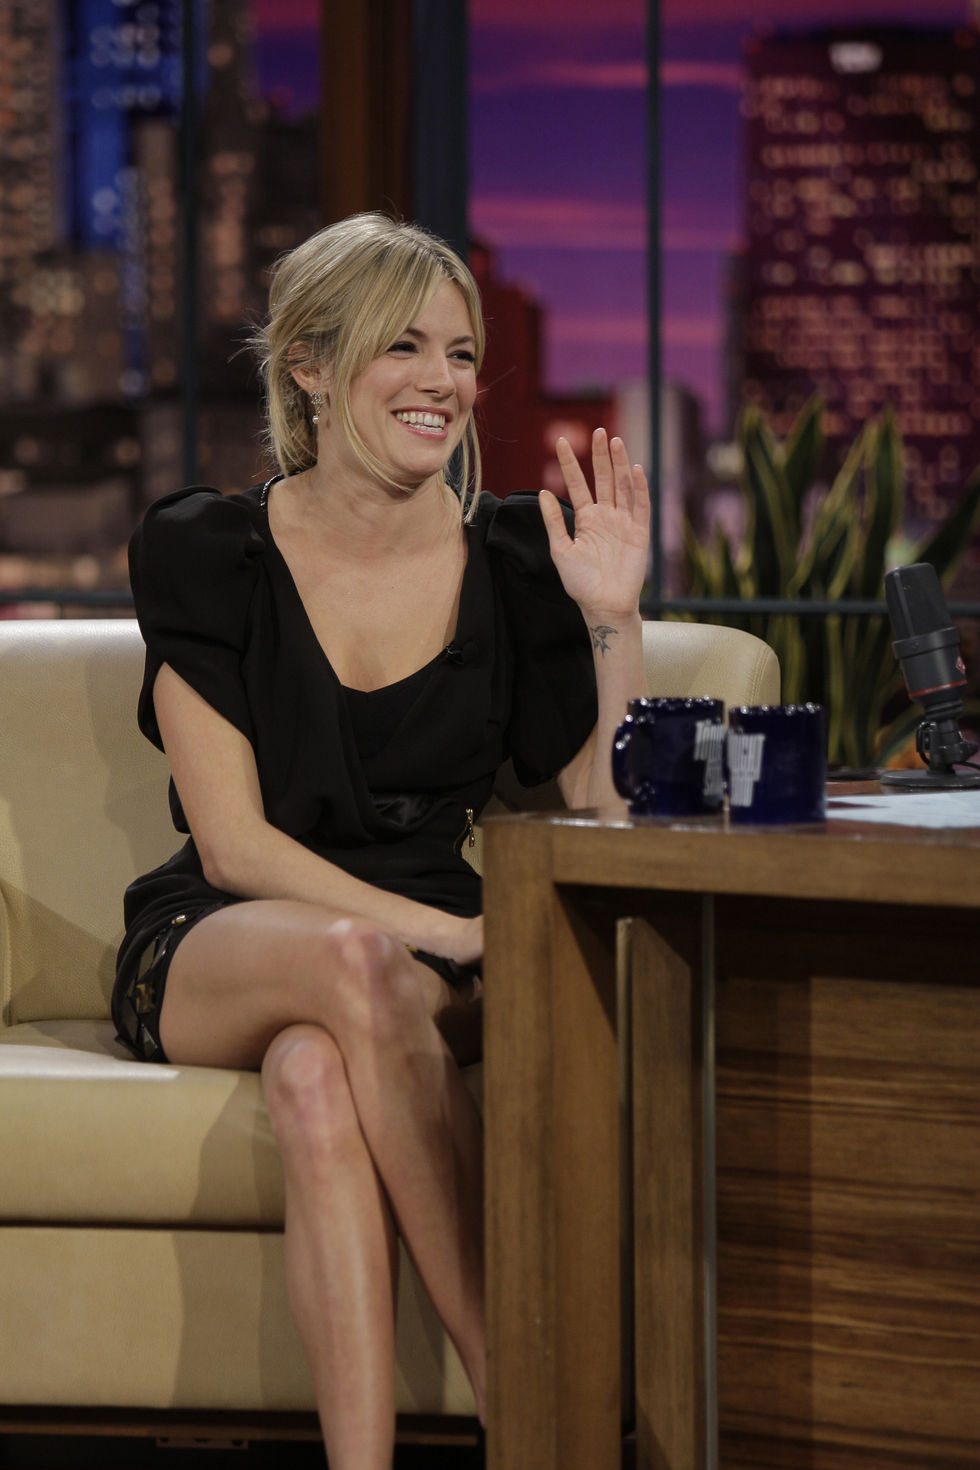 sienna-miller-at-the-tonight-show-with-jay-leno-in-los-angeles-10